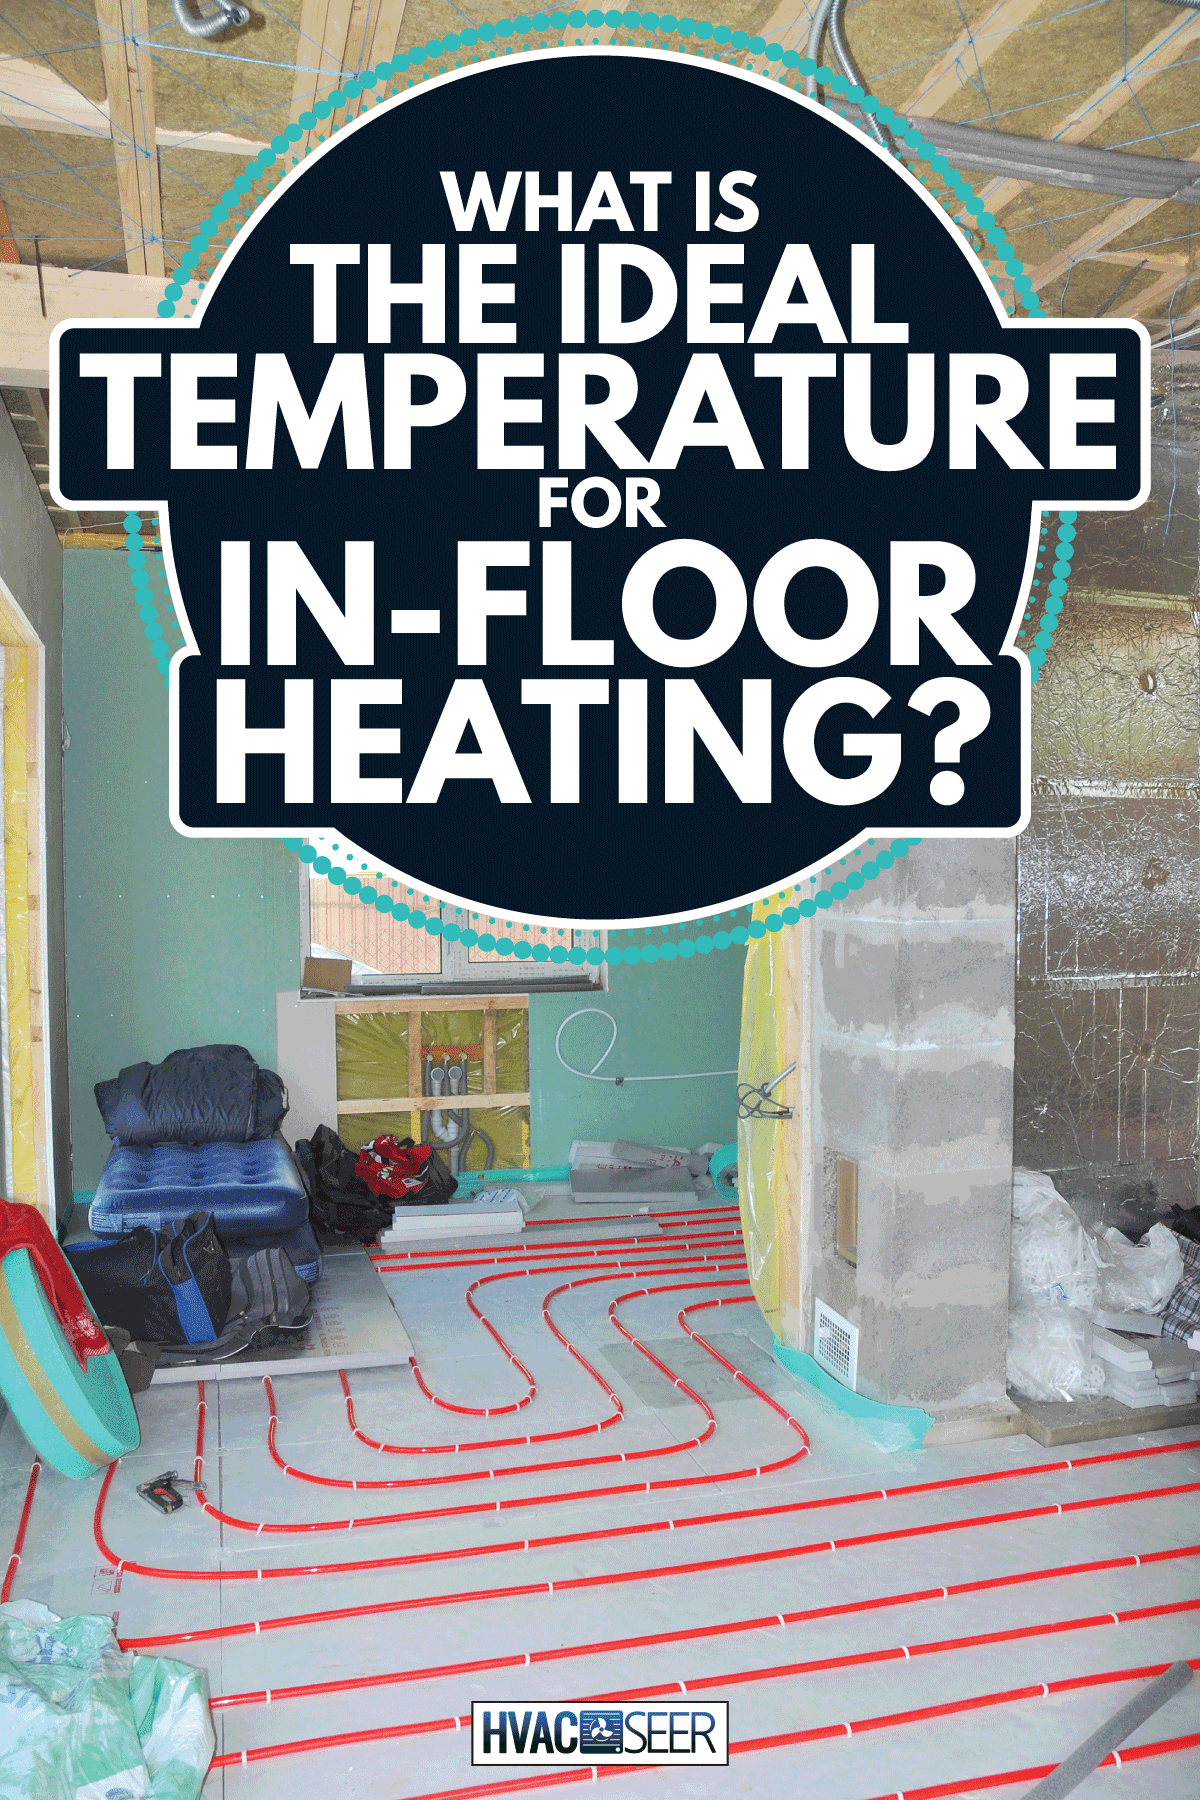 Room construction. Close up on water floor heating system, interior walls insulation. What Is The Ideal Temperature For In-Floor Heating